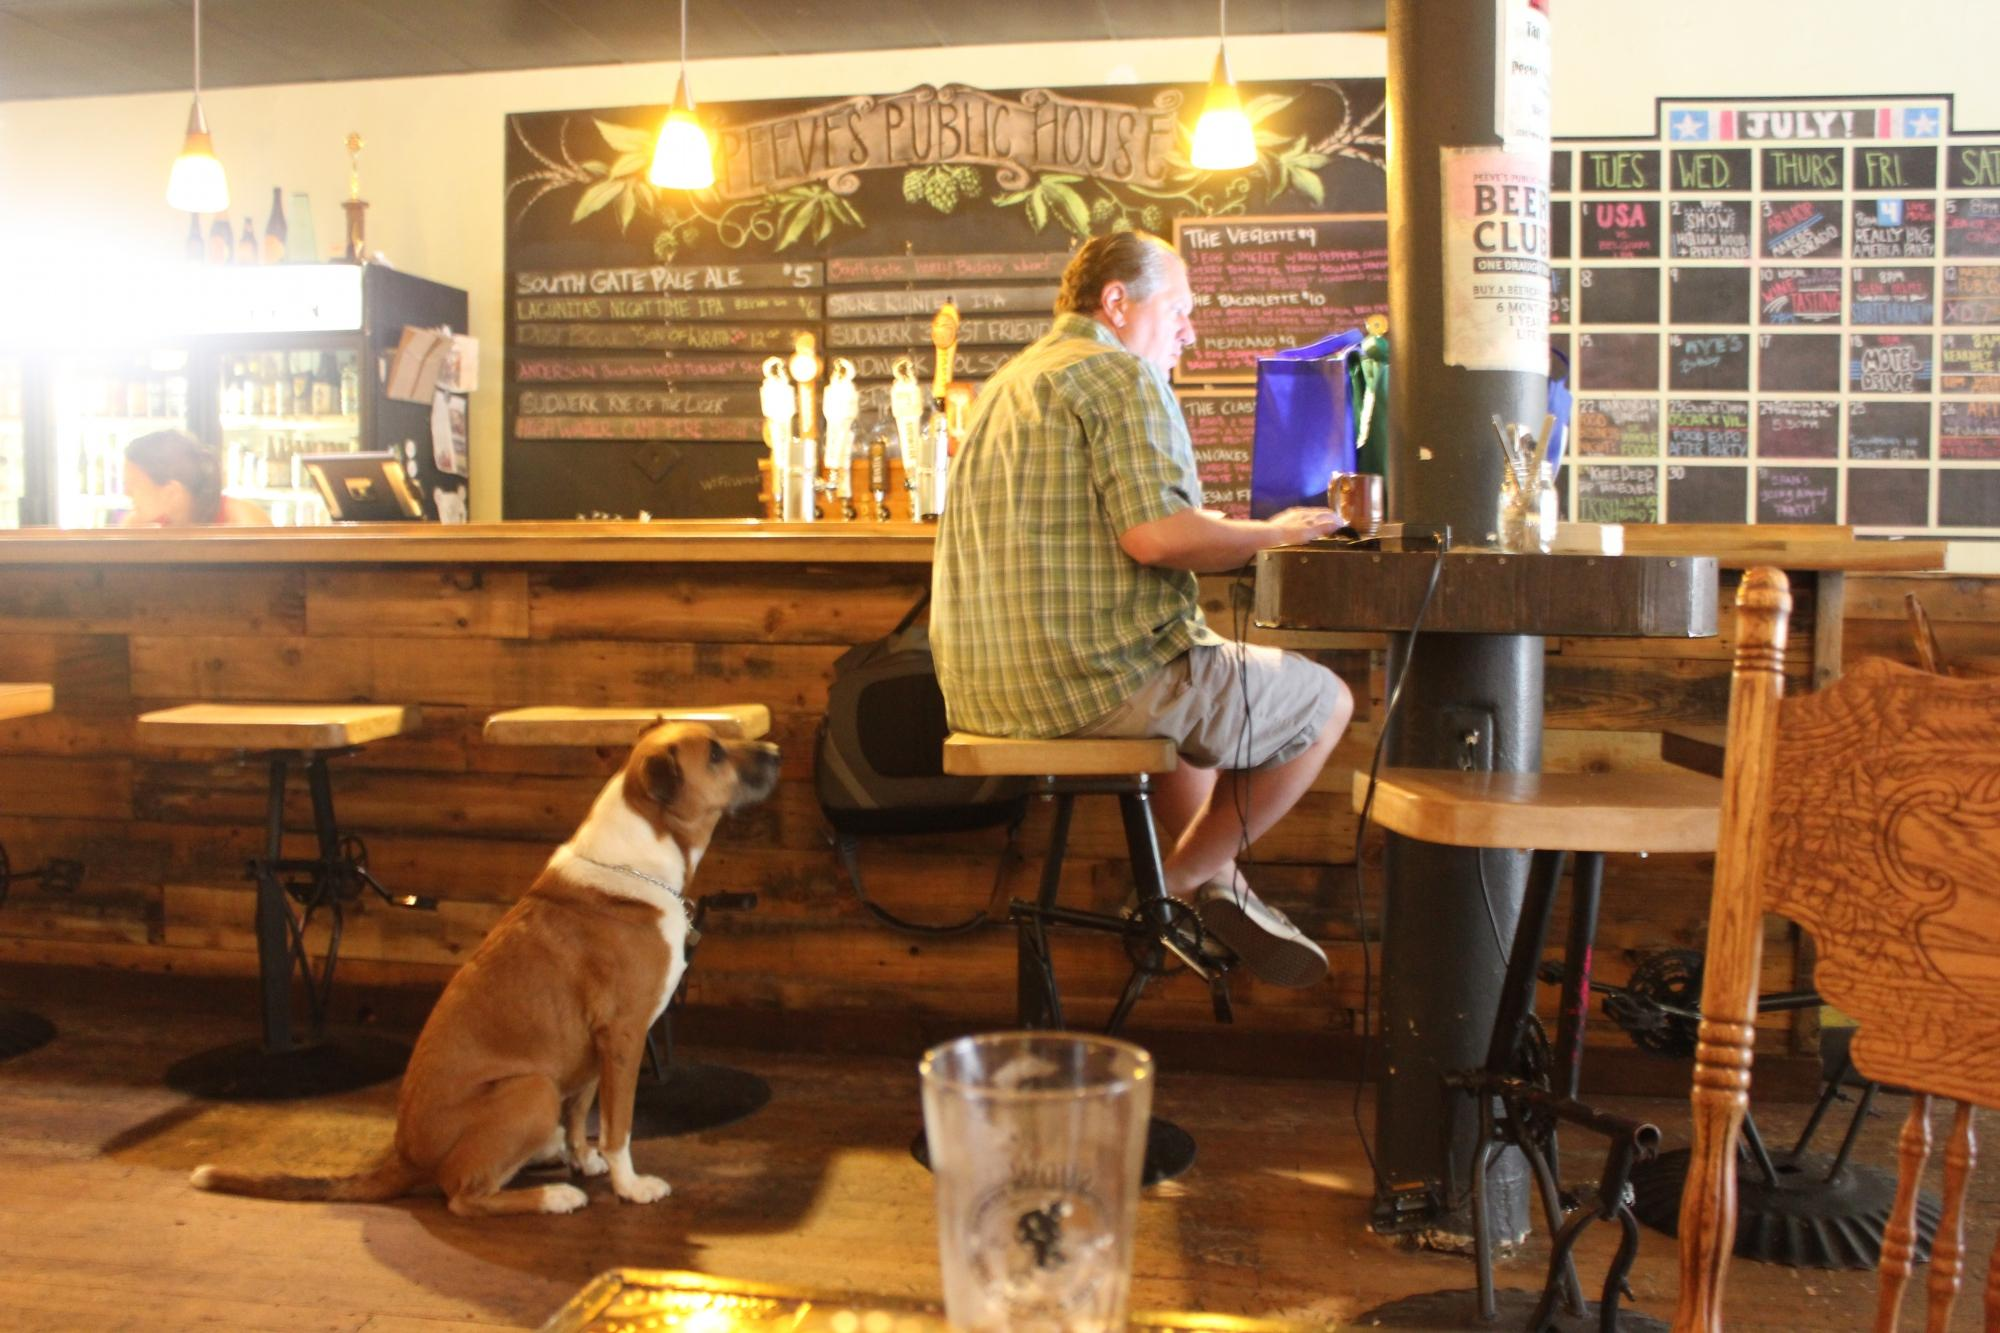 Owner Craig and his dog Peeve. Photo via Tripadvisor.com